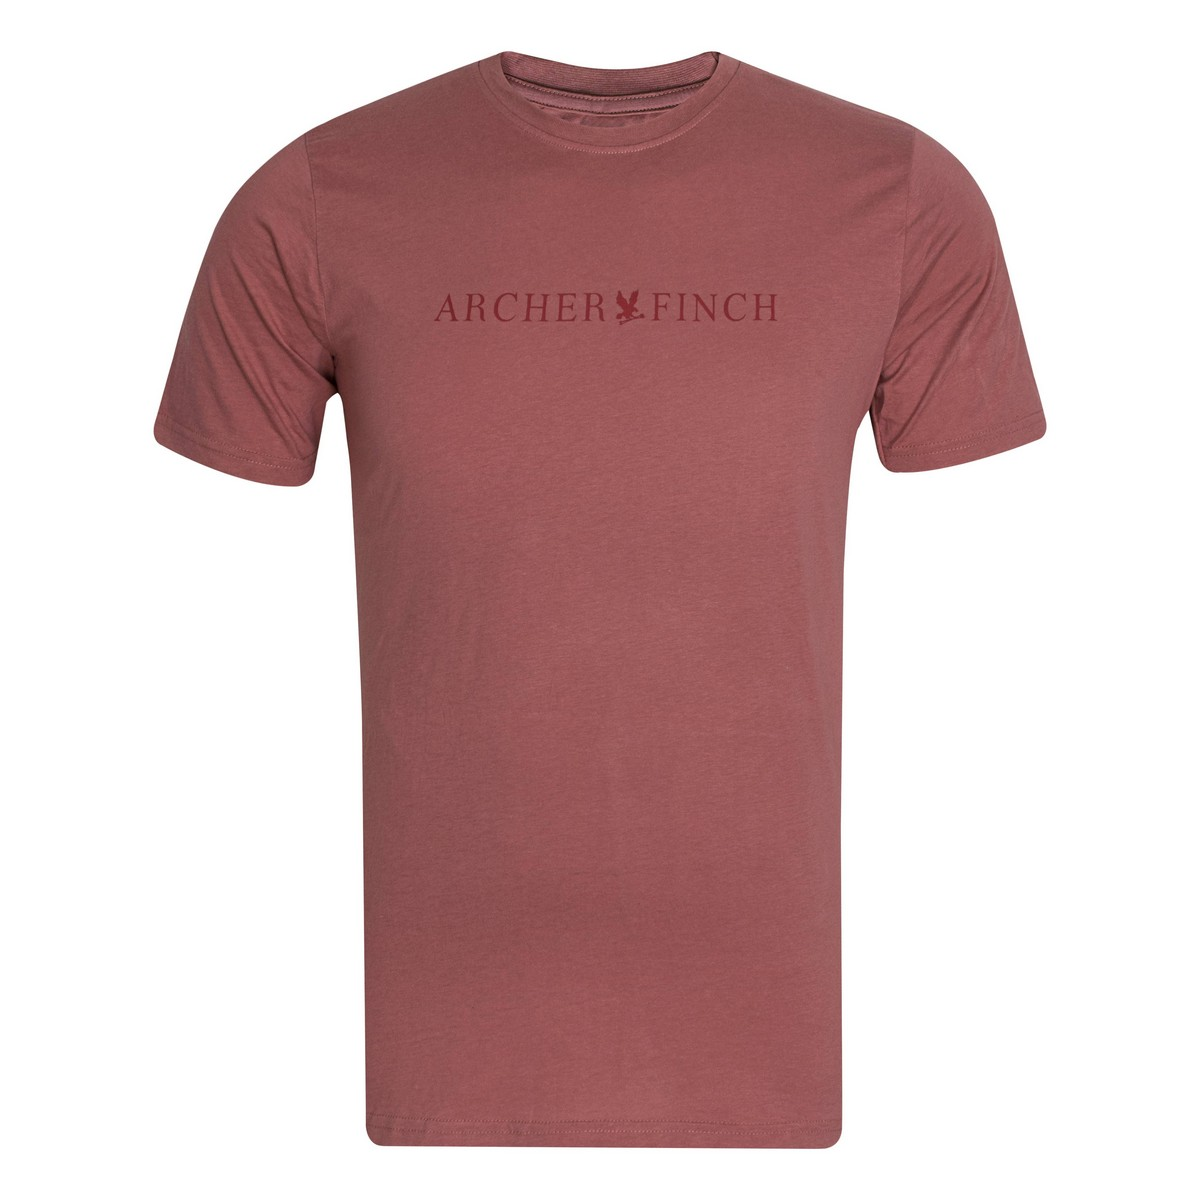 Men T shirt short sleeve Regular fit crew neck casual wear tee shirt for summer and spring white, Grey graceful top with high build quality of print in royal colour and  beautiful branding at chest.